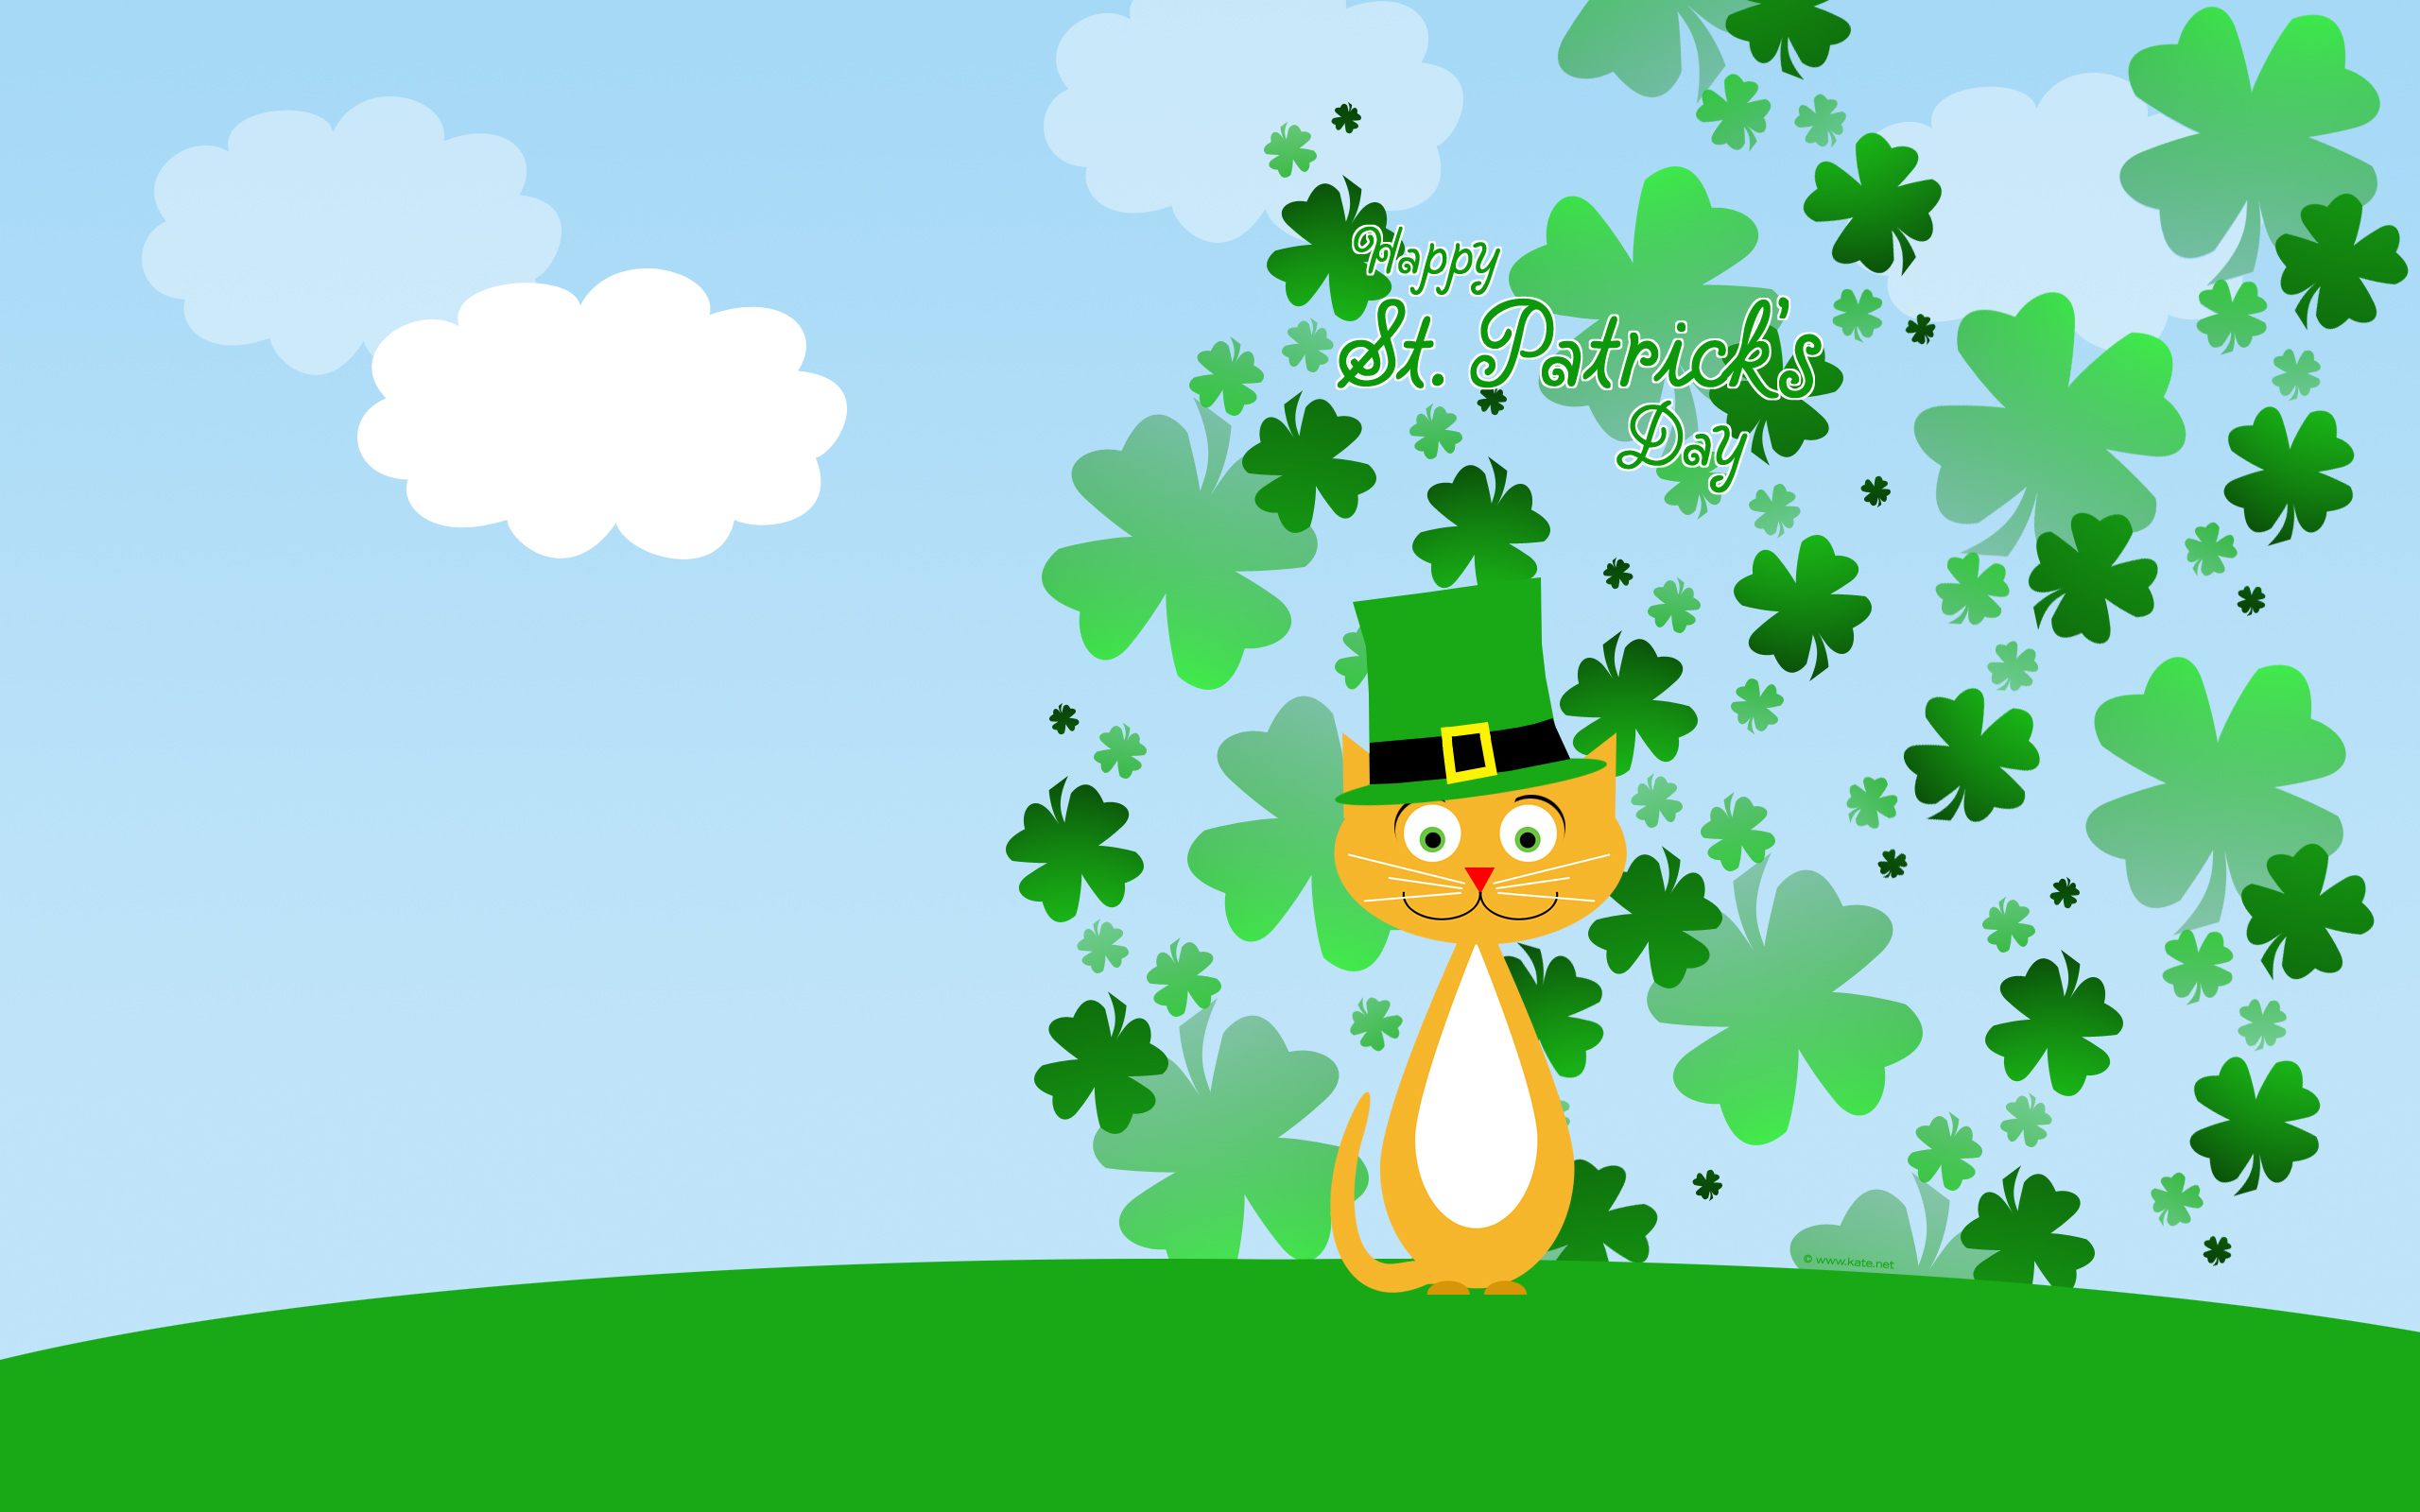 patricks day shamrock background - photo #33